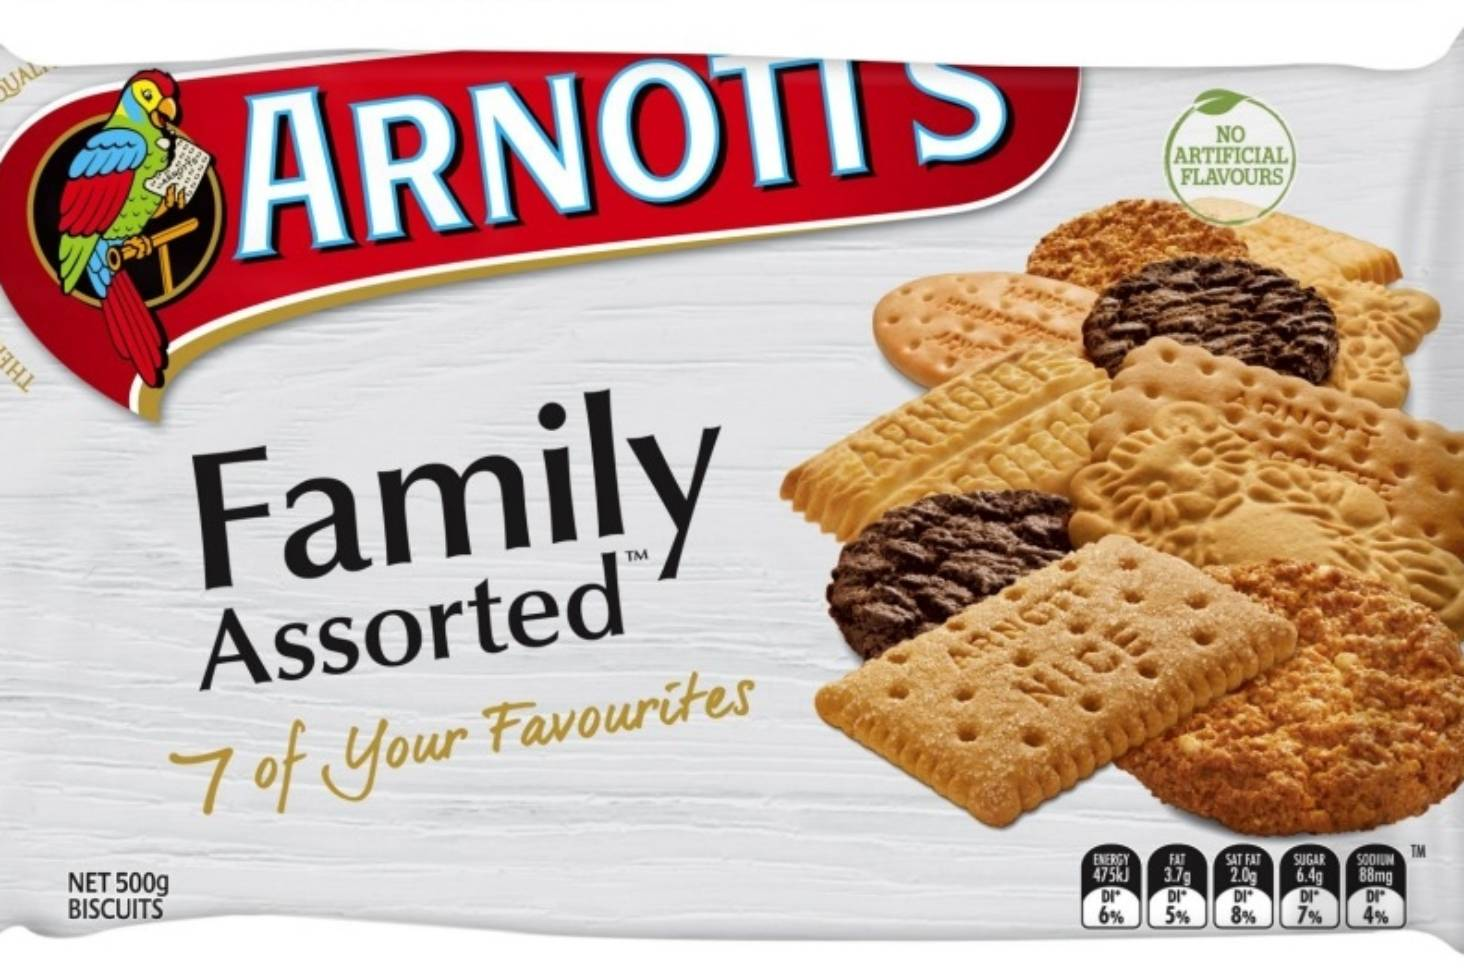 A definitive ranking of every Arnott's Assorted biscuit from worst.